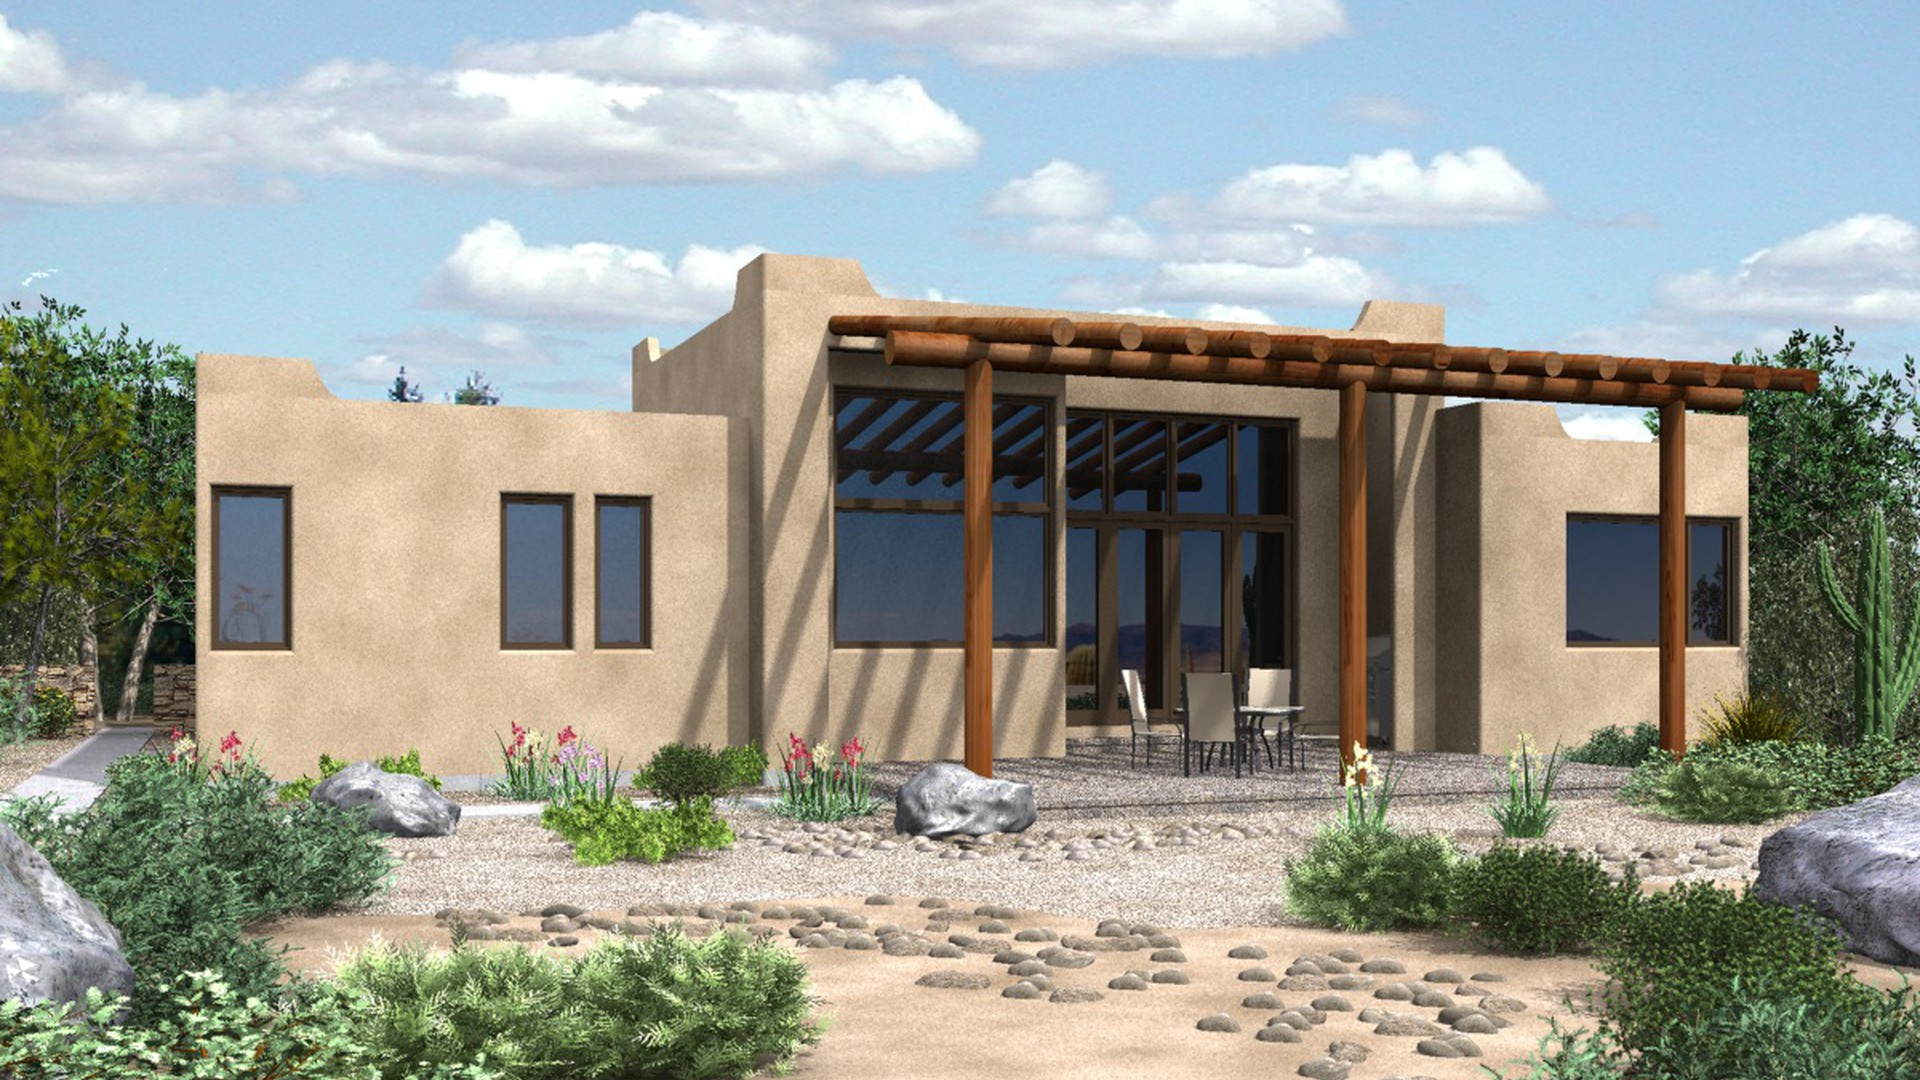 New southwestern style house plans house floor ideas - Adobe house plans nature inspired efficiency ...